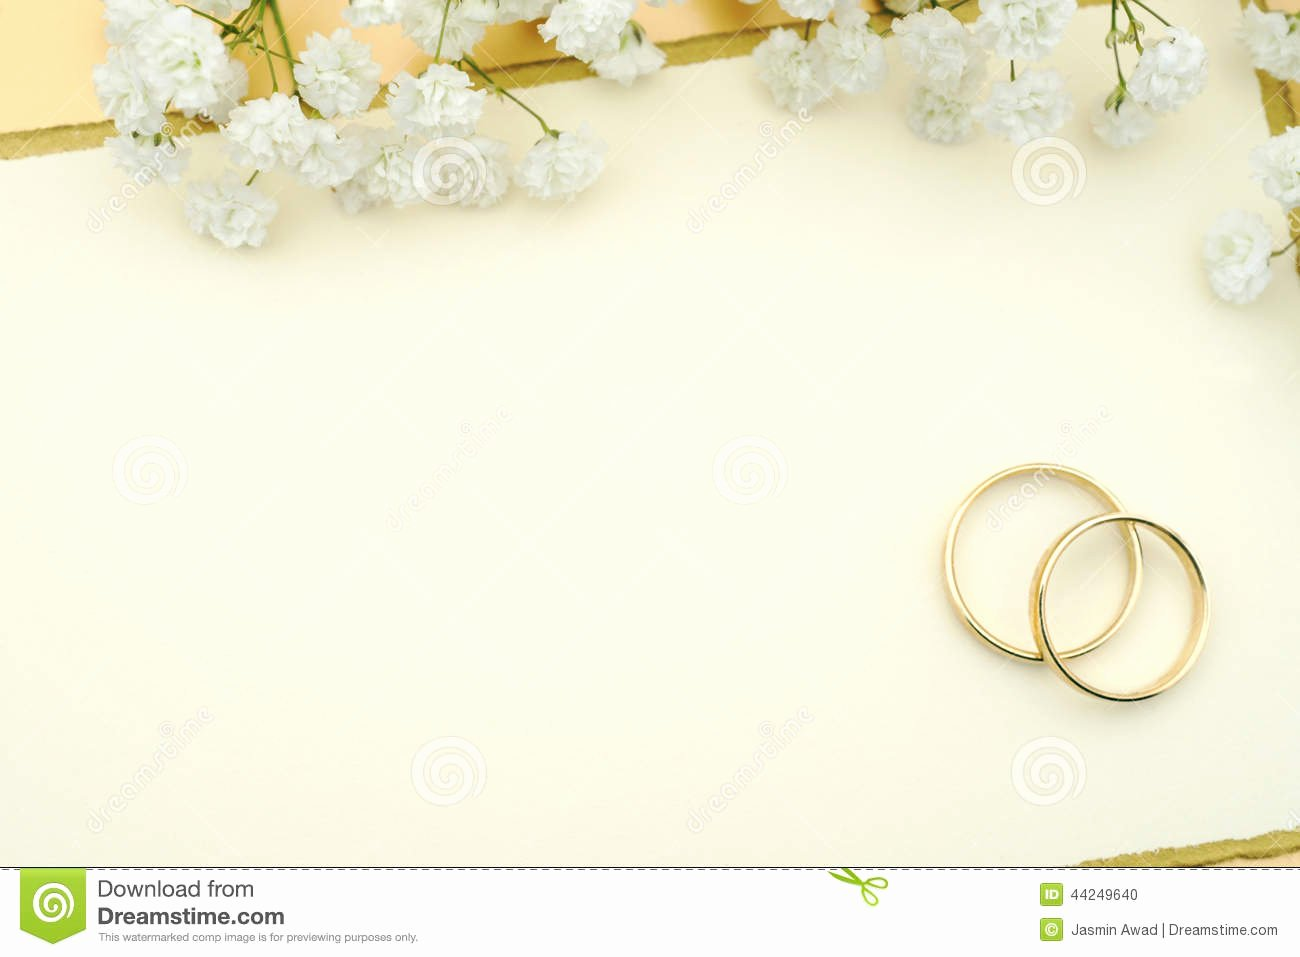 Wedding Invitation Stock Image Ring Invi Free